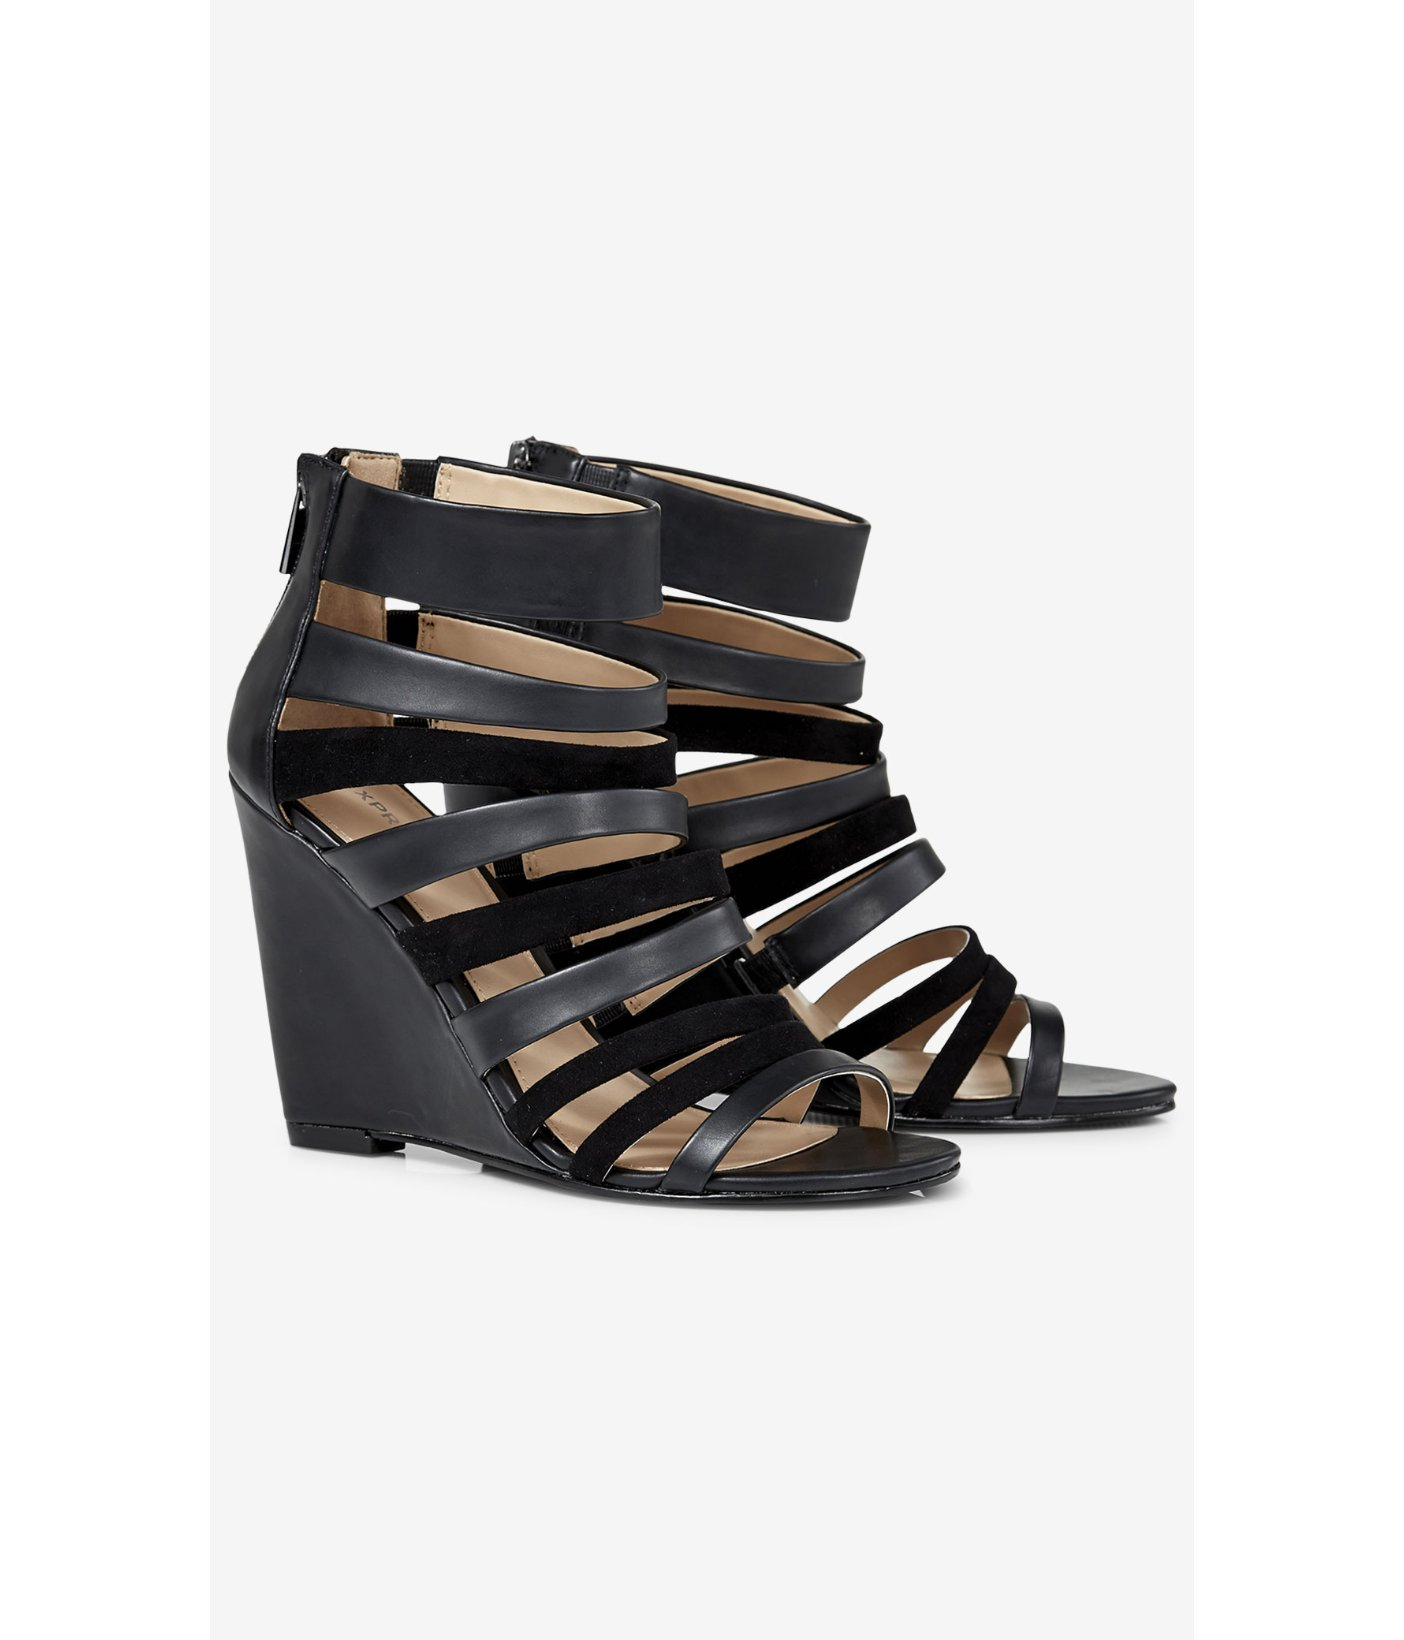 Express Strappy Wedge Sandal in Black